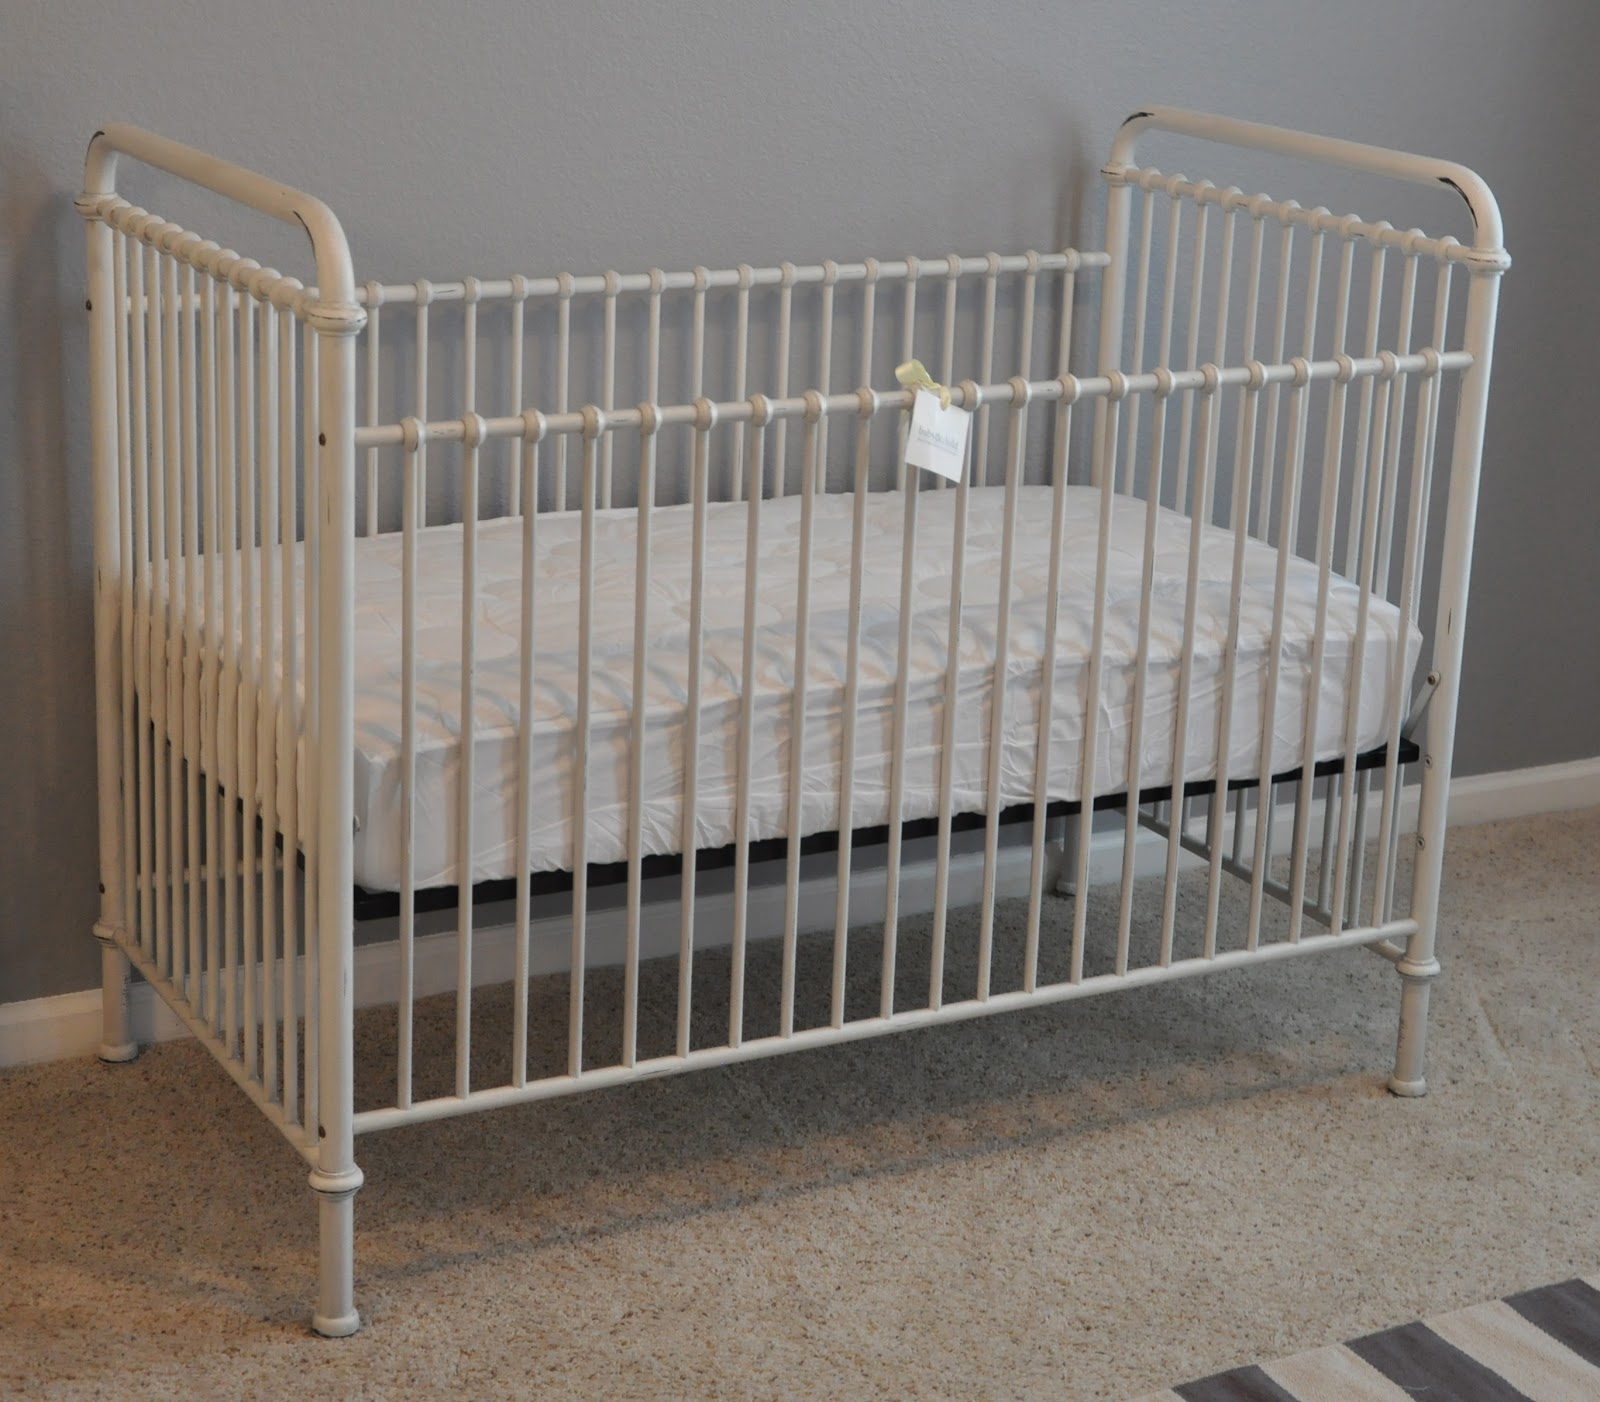 Best Nursery Collections with Restoration Hardware Cribs Design: Restoration Hardware Colette Crib | Baby Crib Carousel | Restoration Hardware Cribs